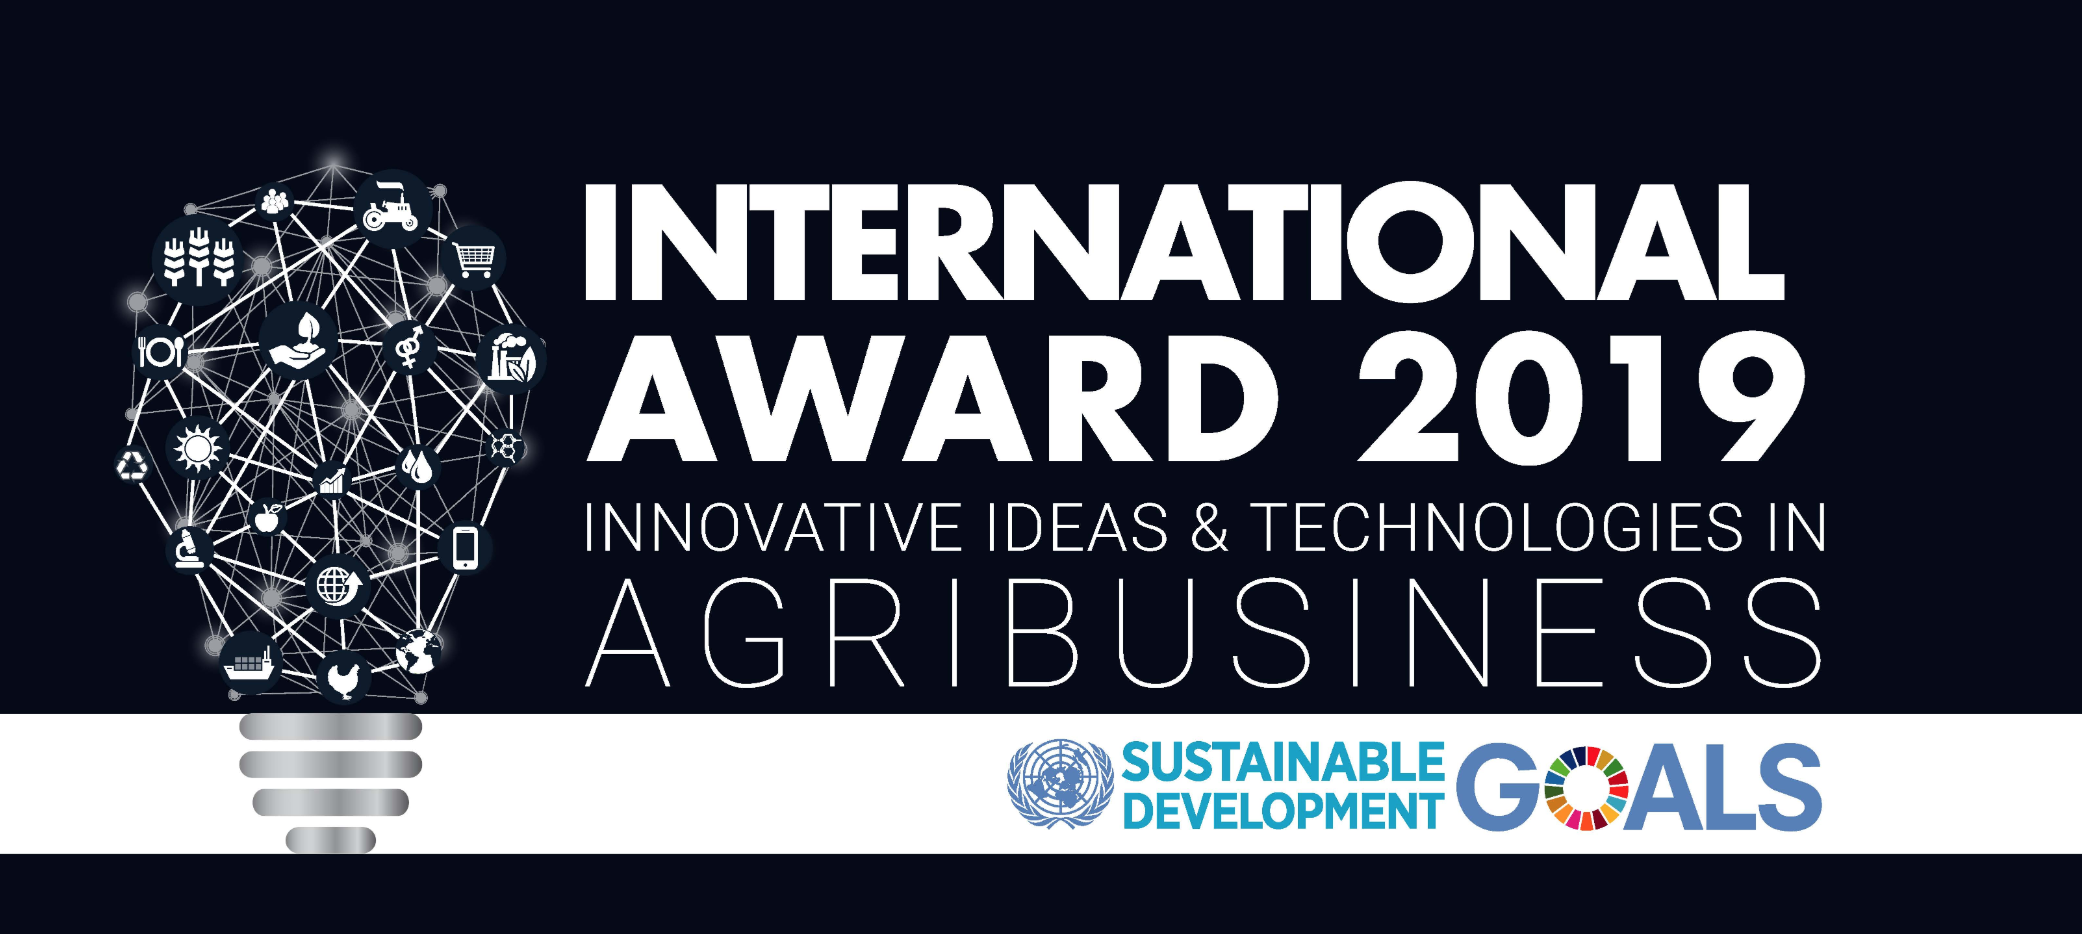 INNOVATIVE IDEAS & TECHNOLOGIES IN AGRIBUSINESS - United Nations, Industrial Development OrganizationJudge, 2019